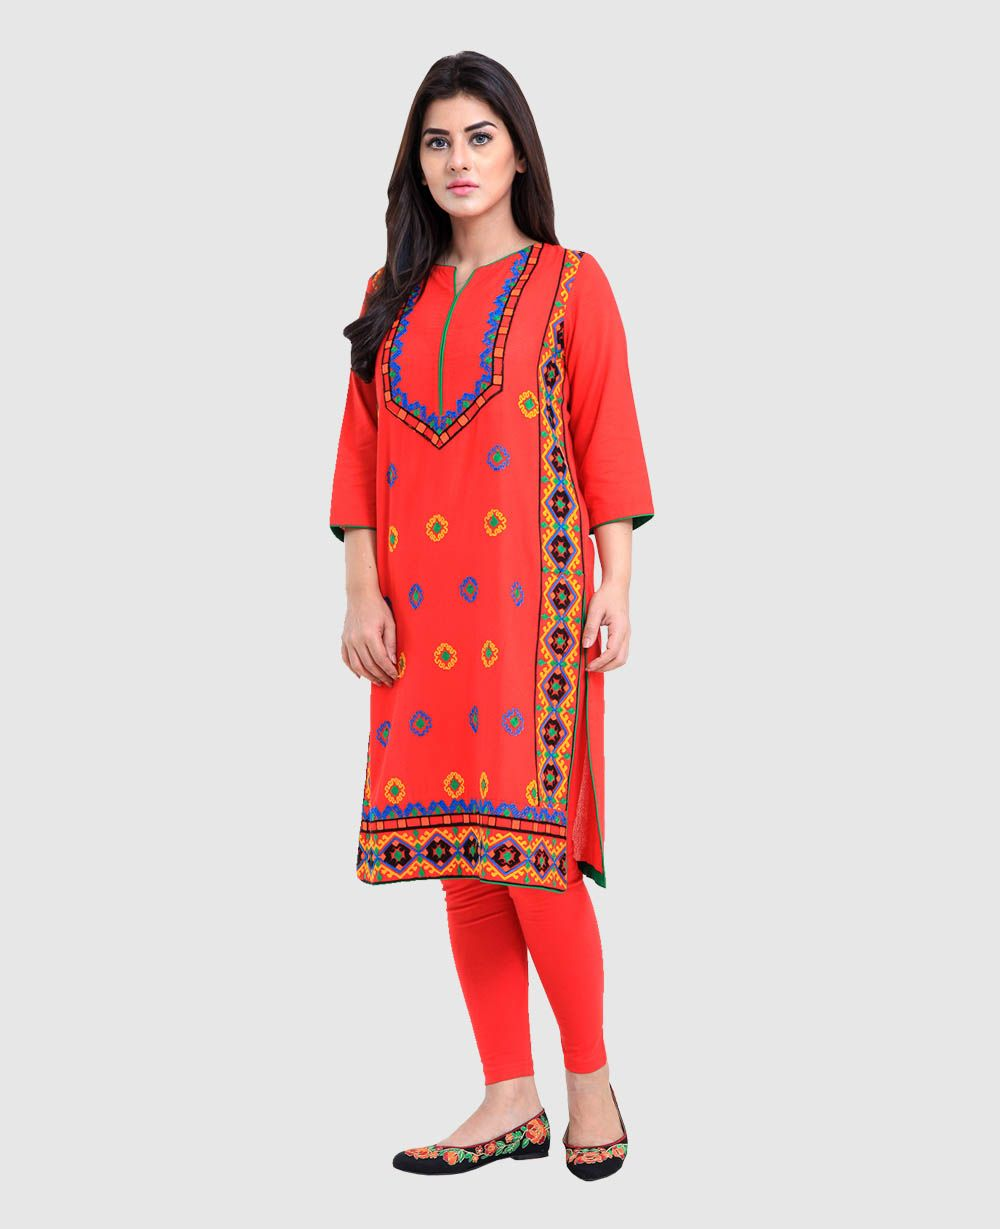 b21a4bcbc69f Rang Ja Latest Colorful Kurti Dresses 2018-2019 Eid Collection ...